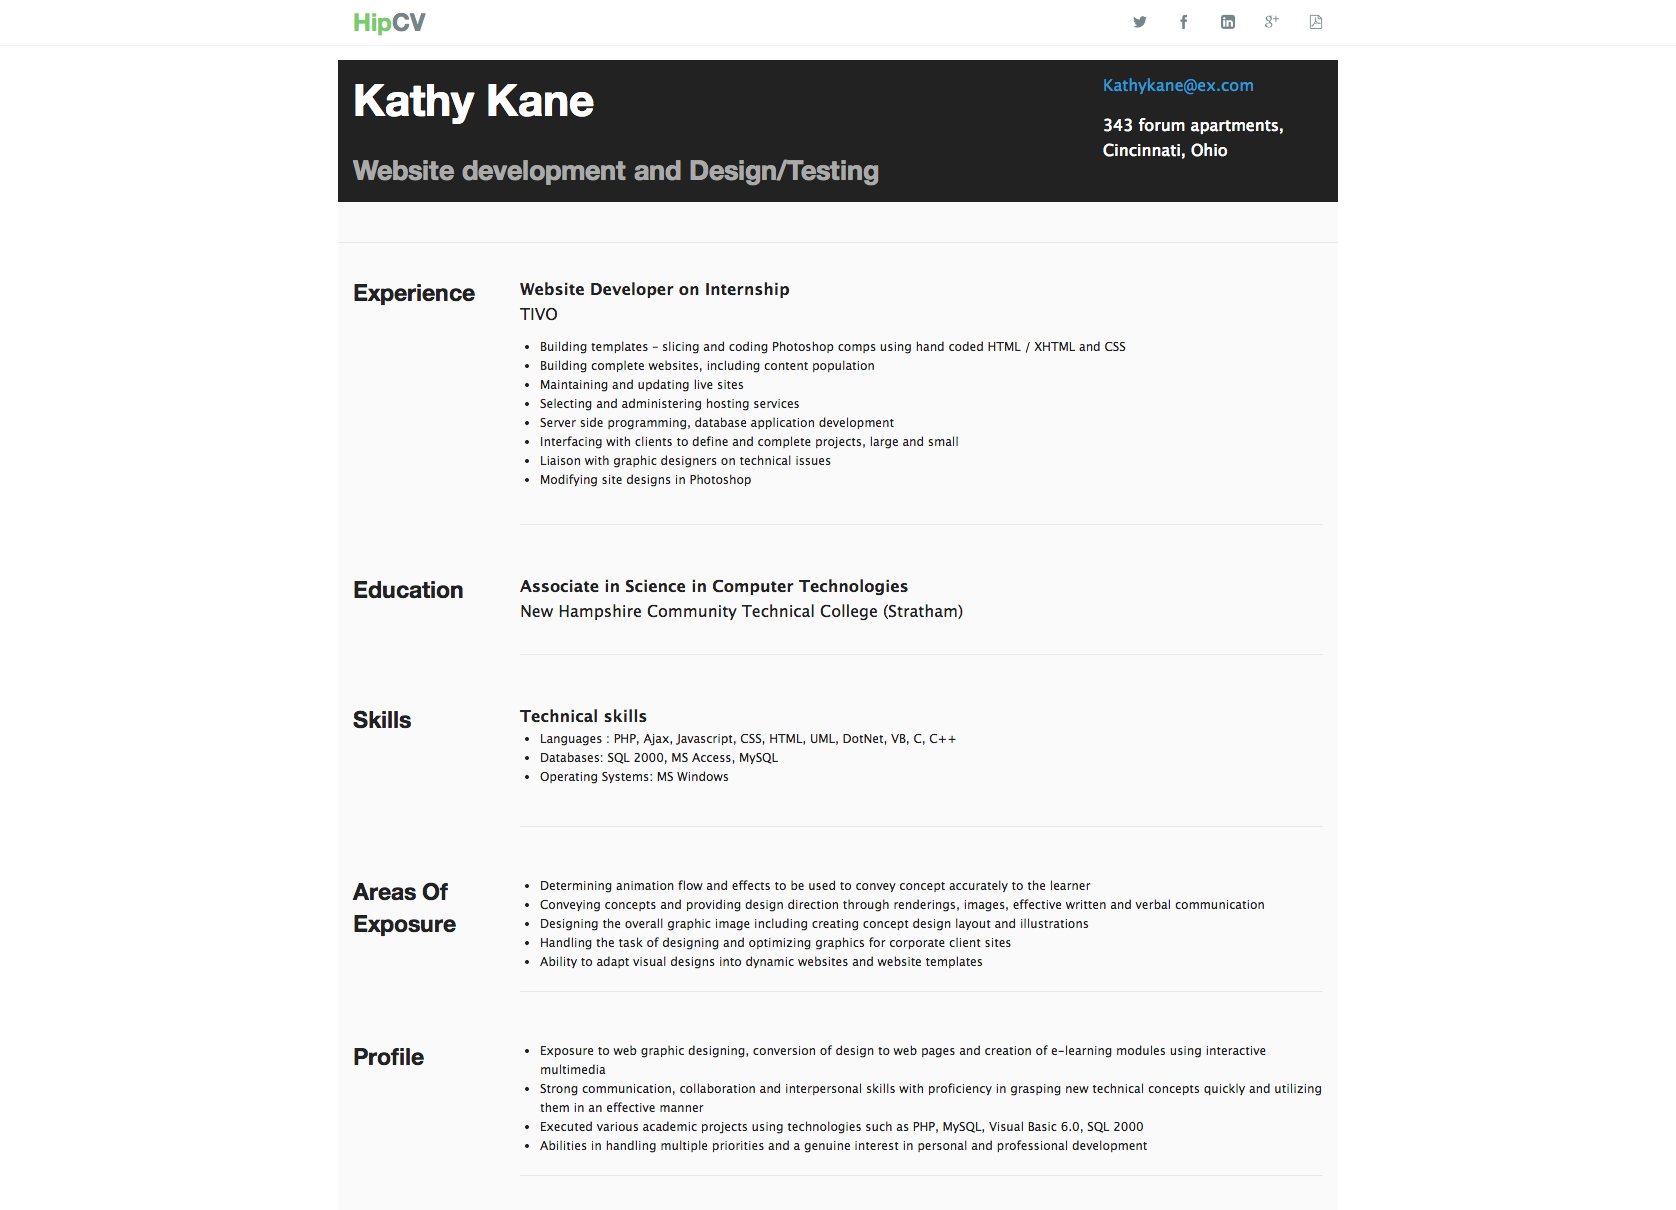 Resume example for freshers. Resume examples, Computer